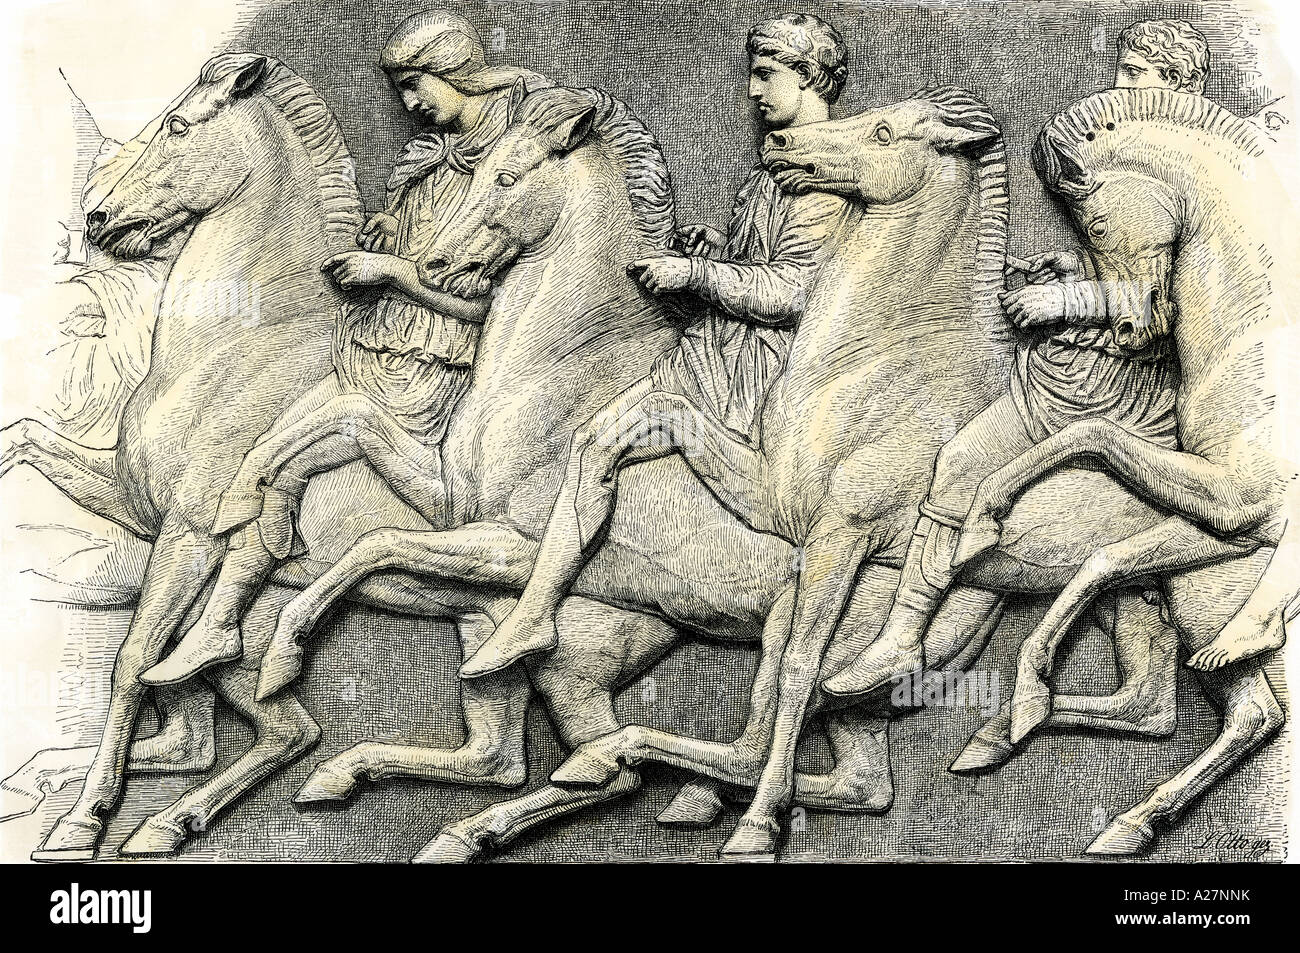 Athenian horsemen from the frieze of the Parthenon. Hand-colored woodcut - Stock Image